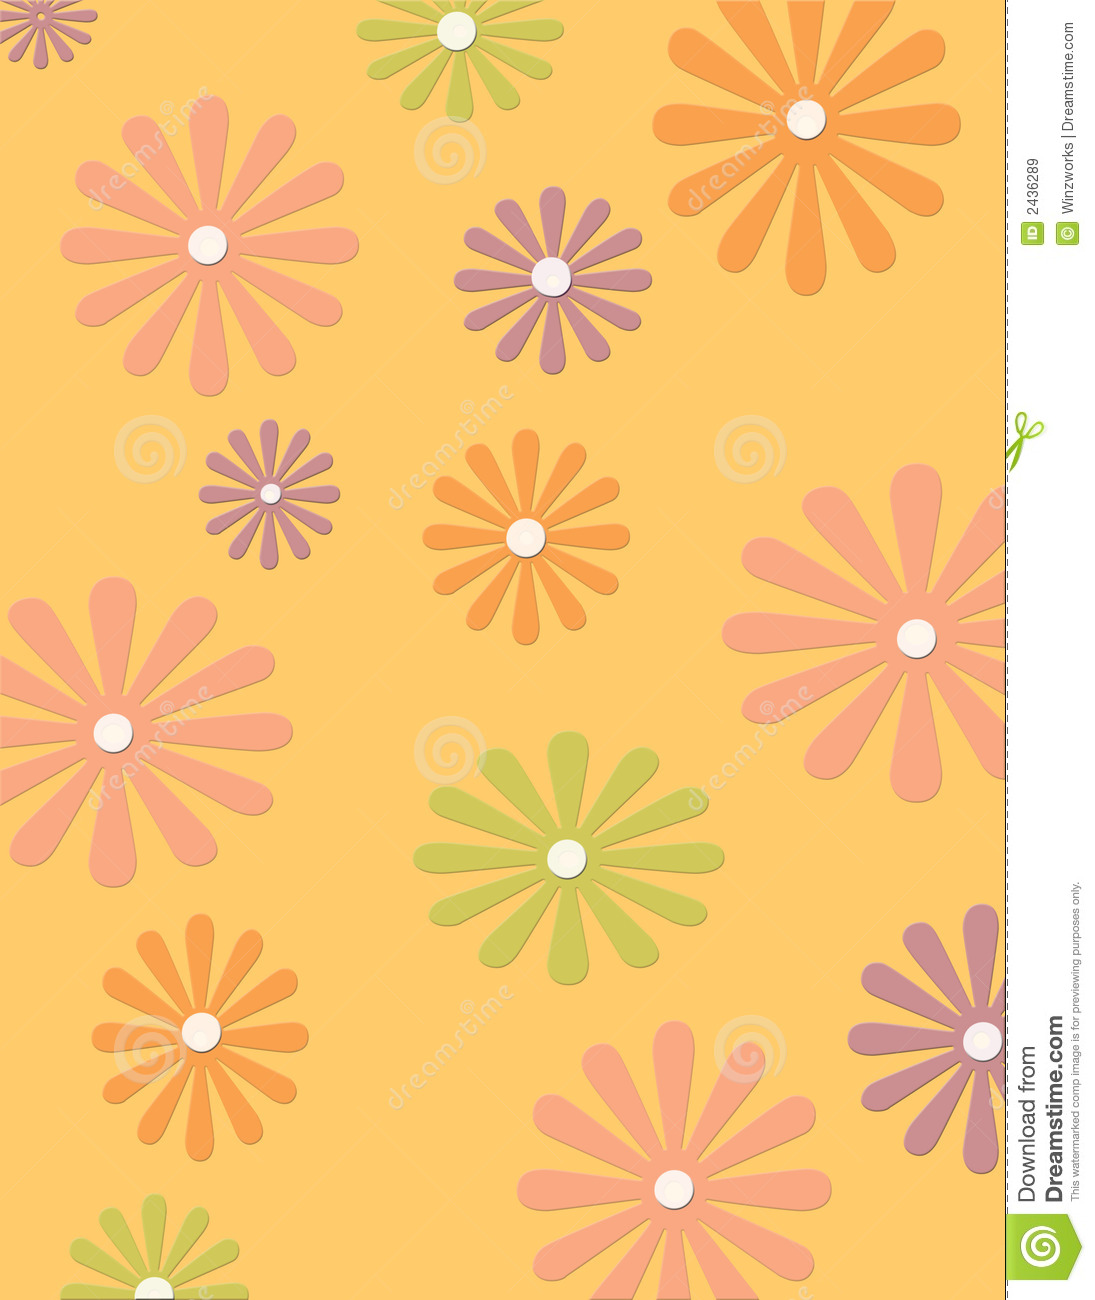 groovy flower background royalty free stock images image